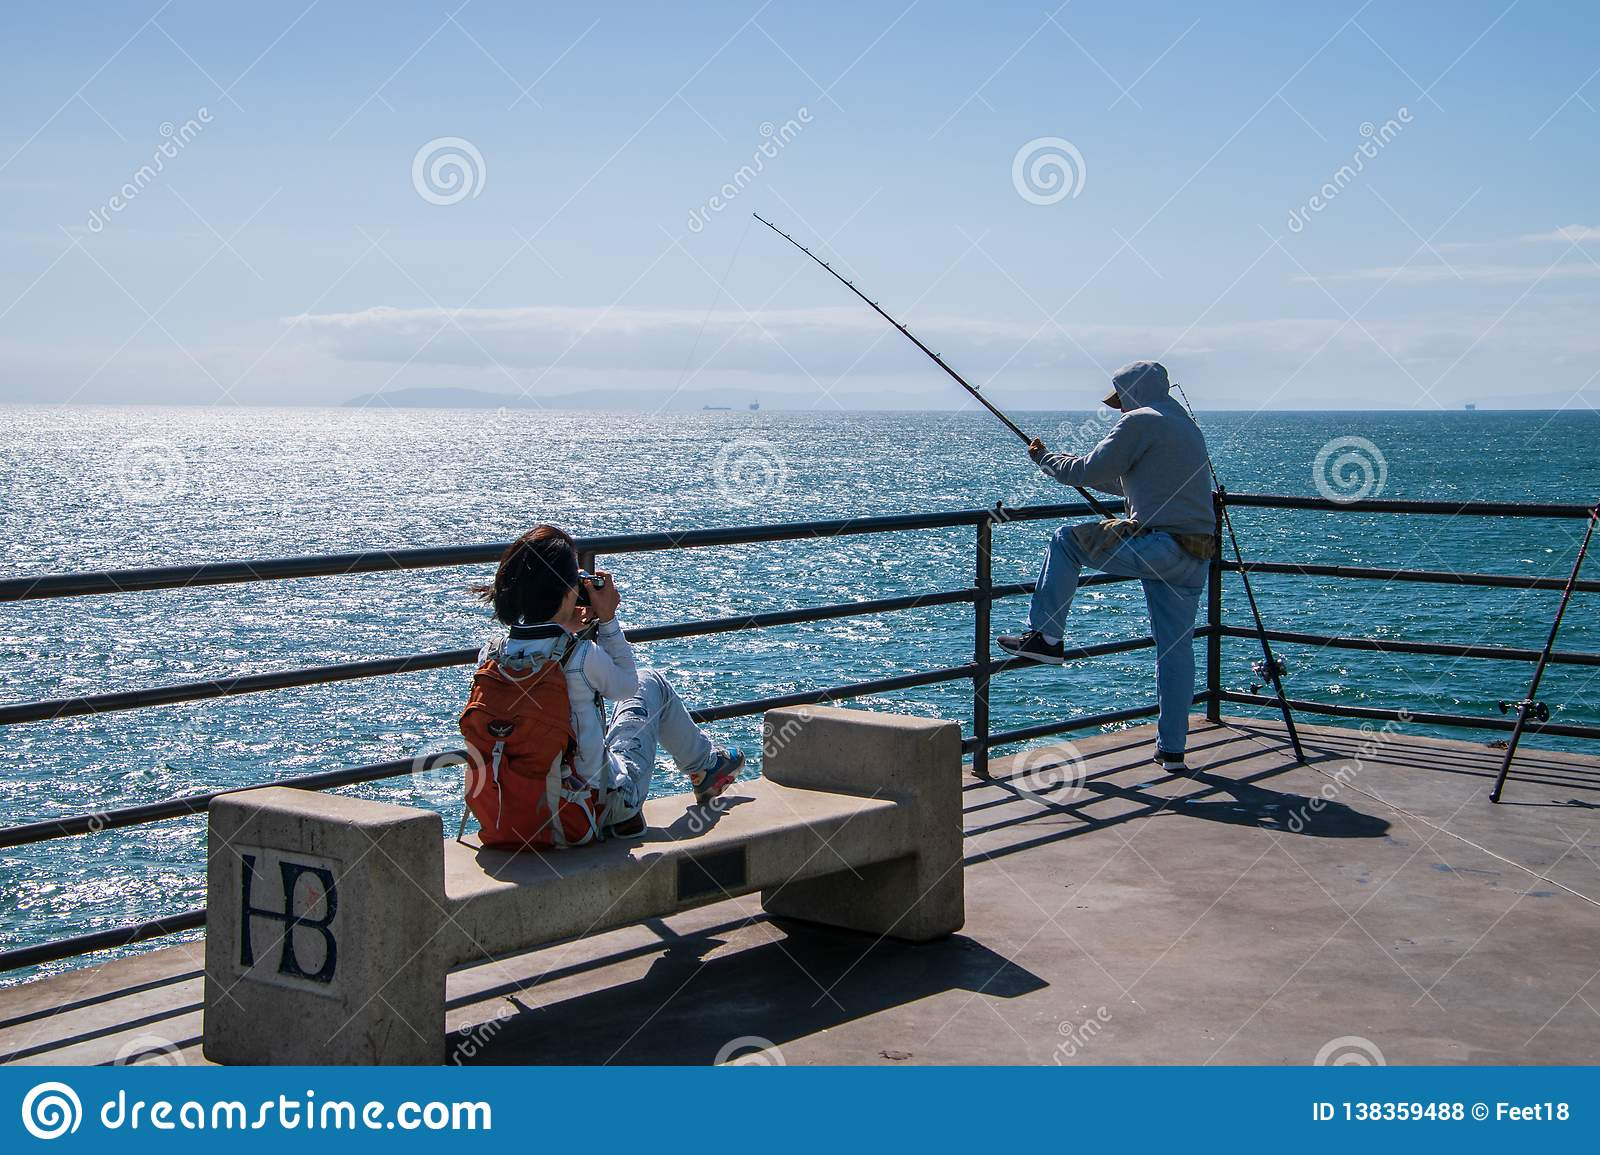 Young Girl Taking A Picture Of A Fisherman Fishing Off Of The End Of